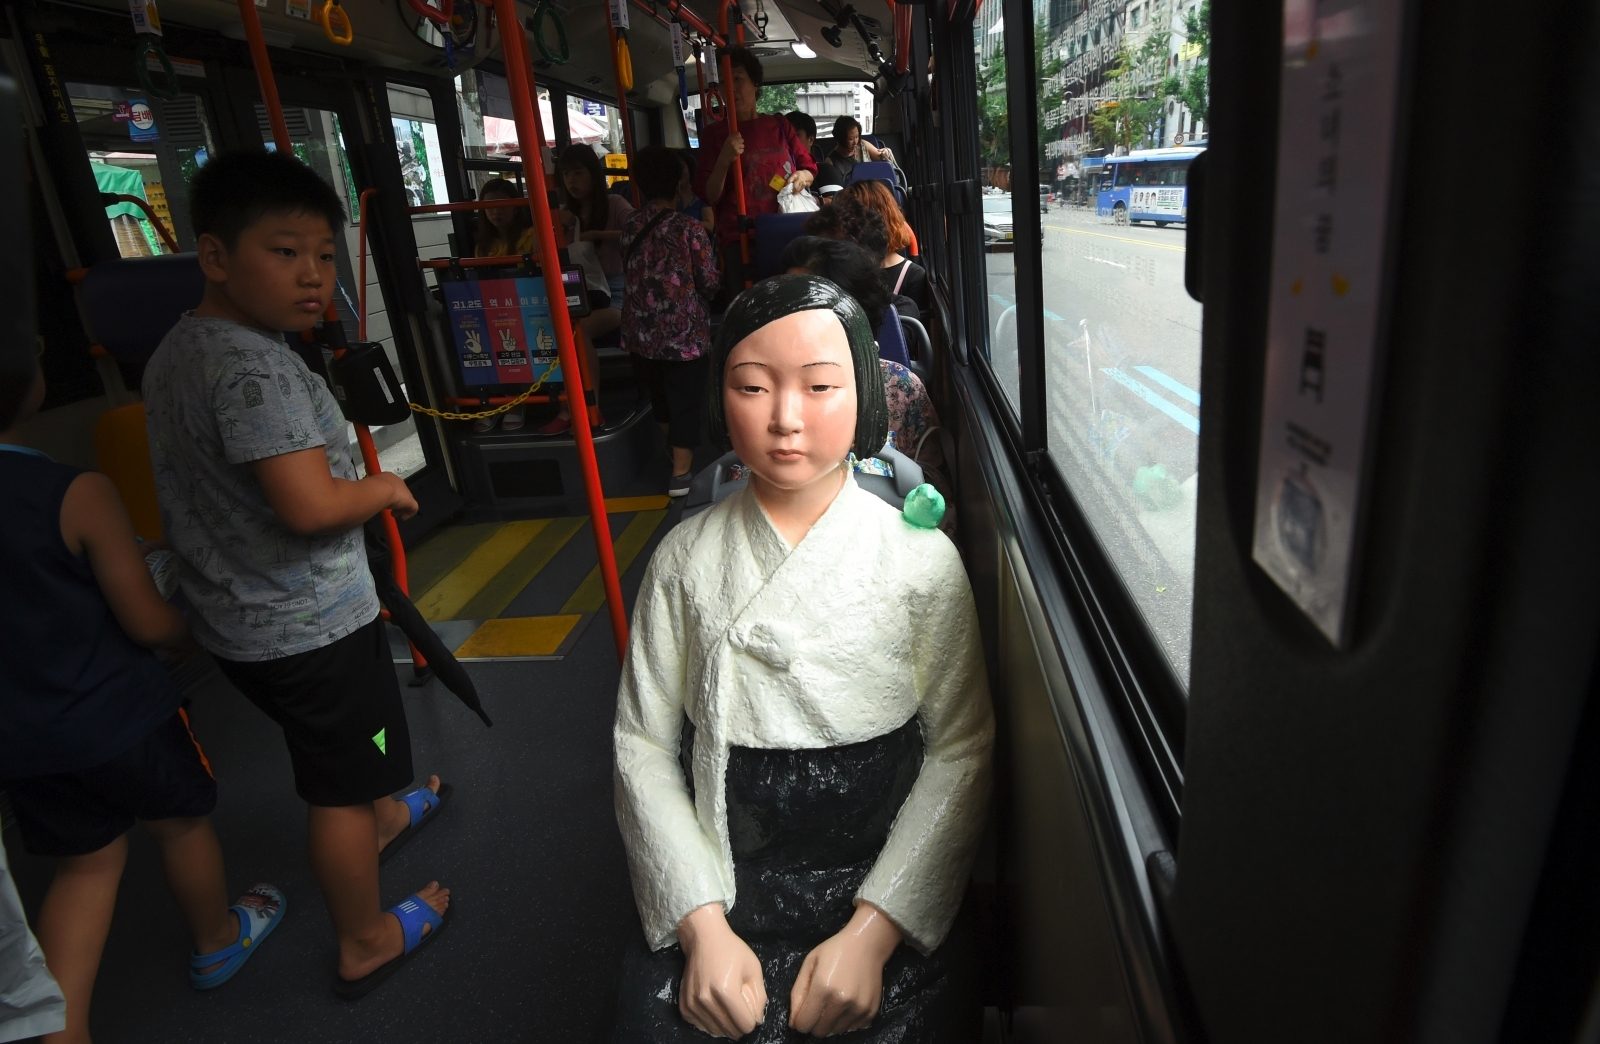 South Korea installs statues of comfort women on buses